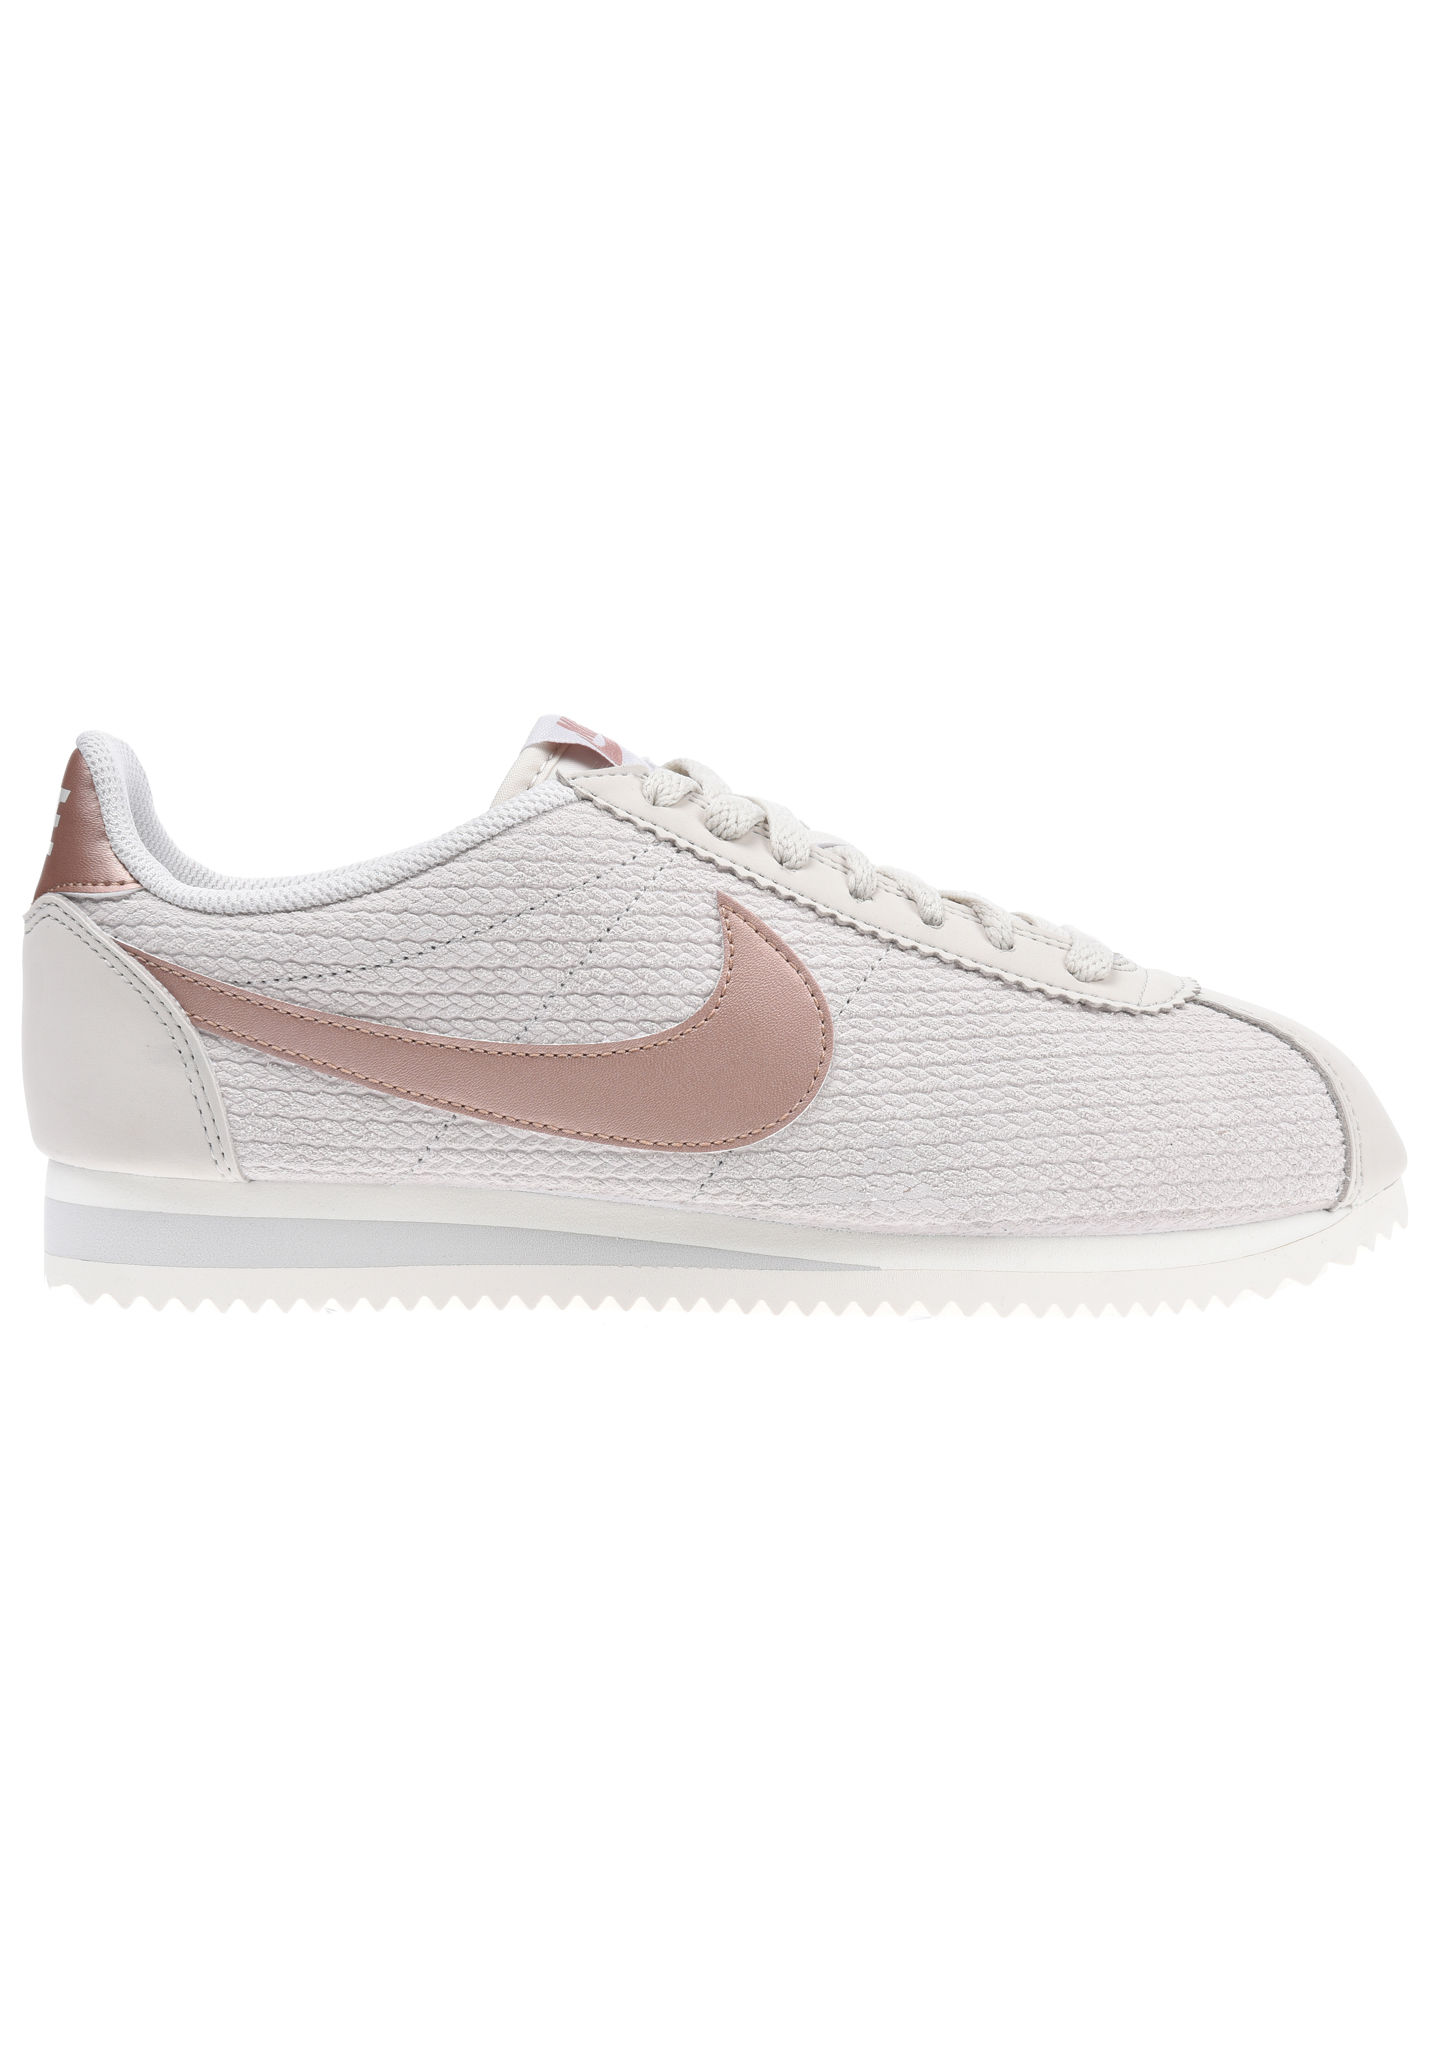 biggest discount new authentic quality products NIKE SPORTSWEAR Classic Cortez Lthr Lux - Sneakers for Women - Beige